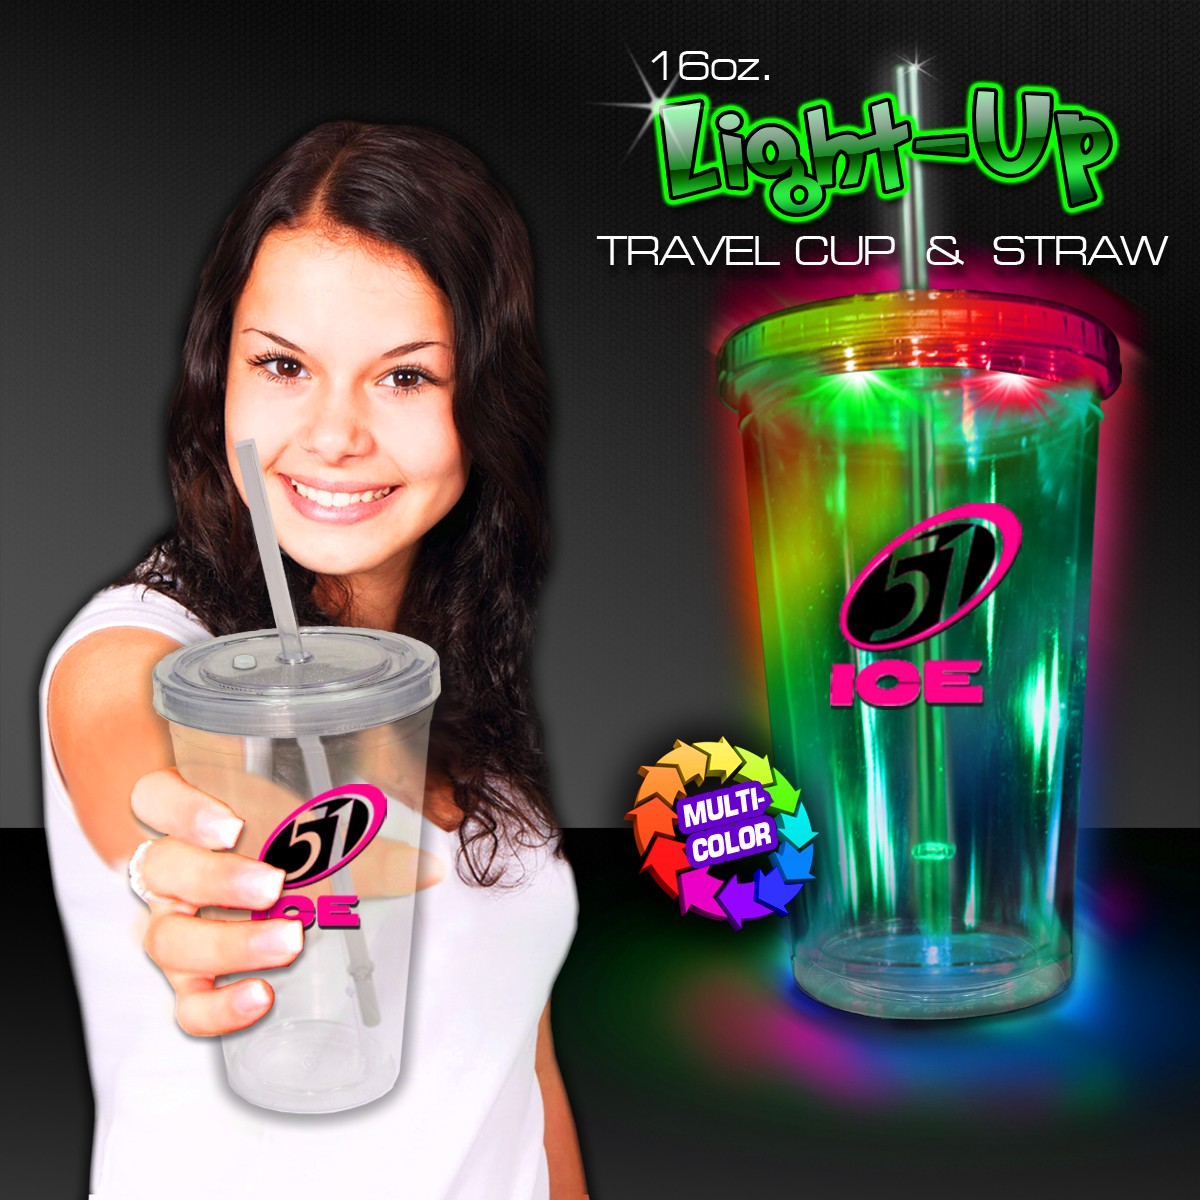 Multicolor Light Up Travel Cup with CLEAR Lid and Straw